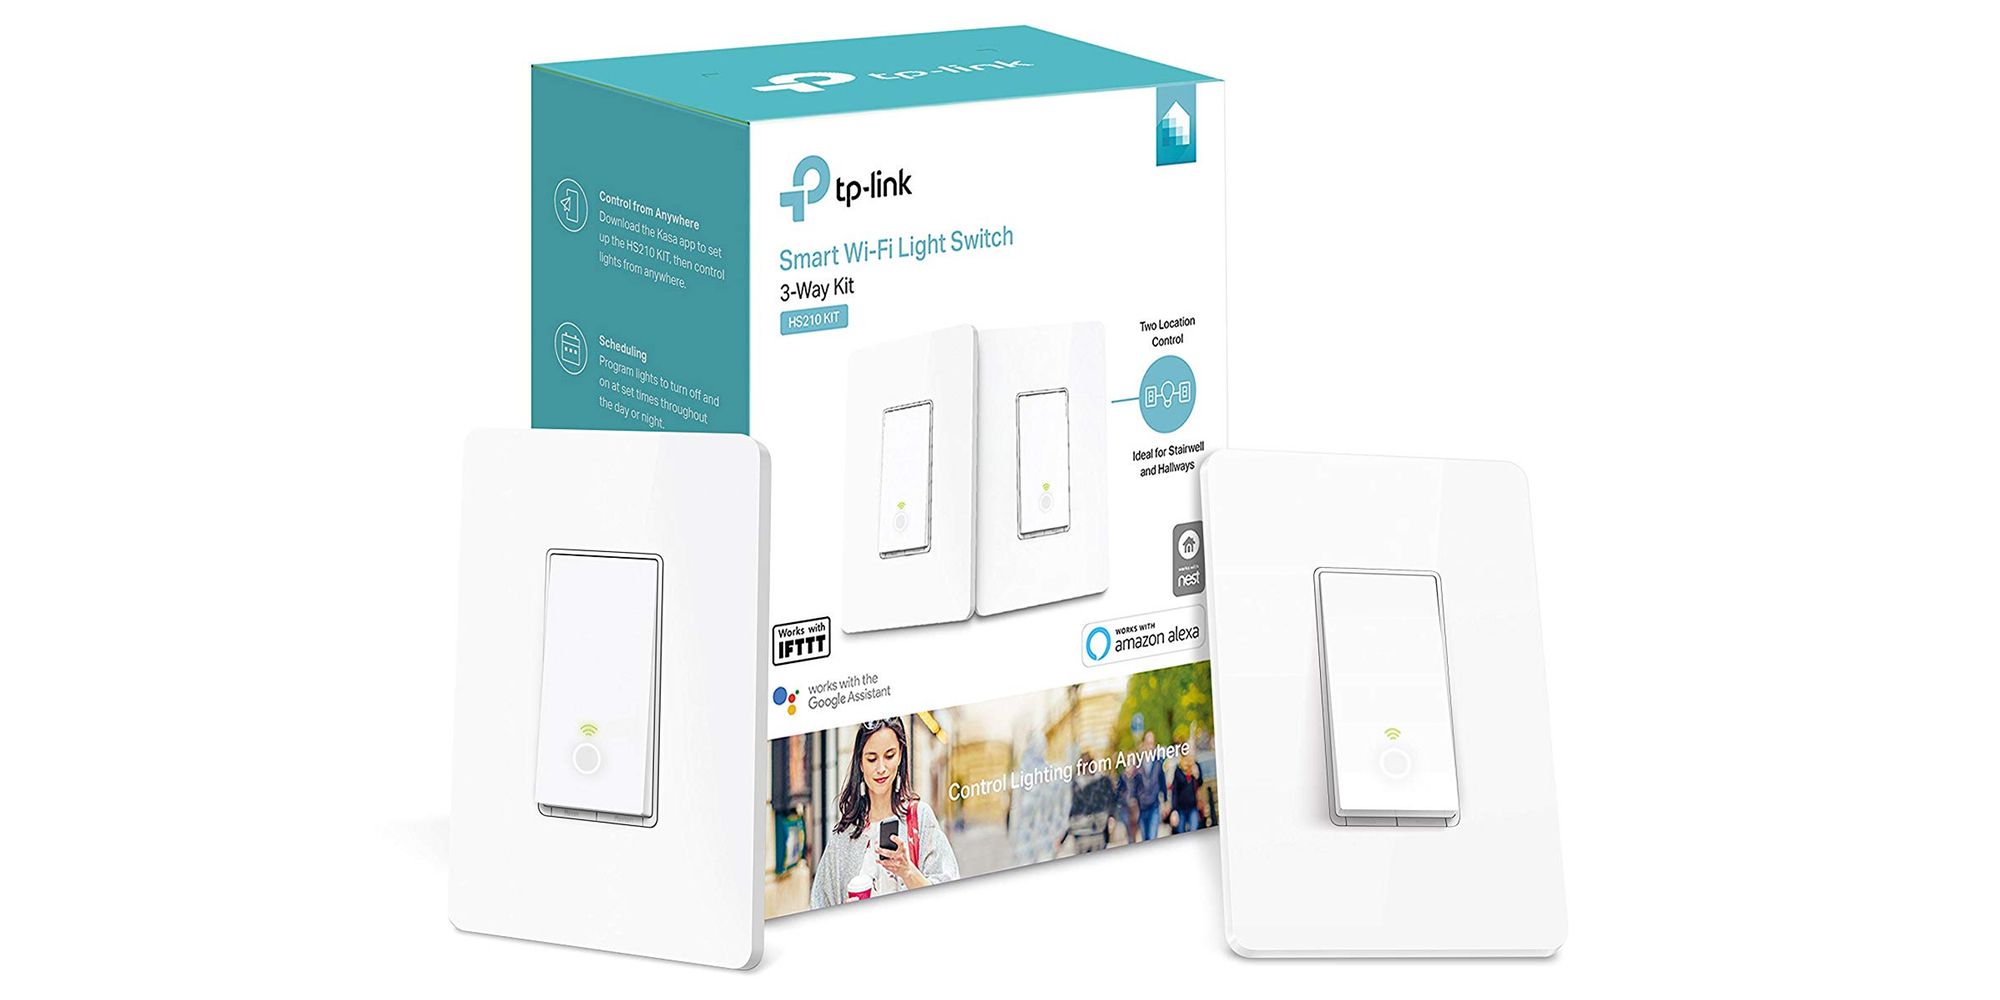 TP-Link Smart Light Switches are perfect for voice-controlled homes, get two for $45